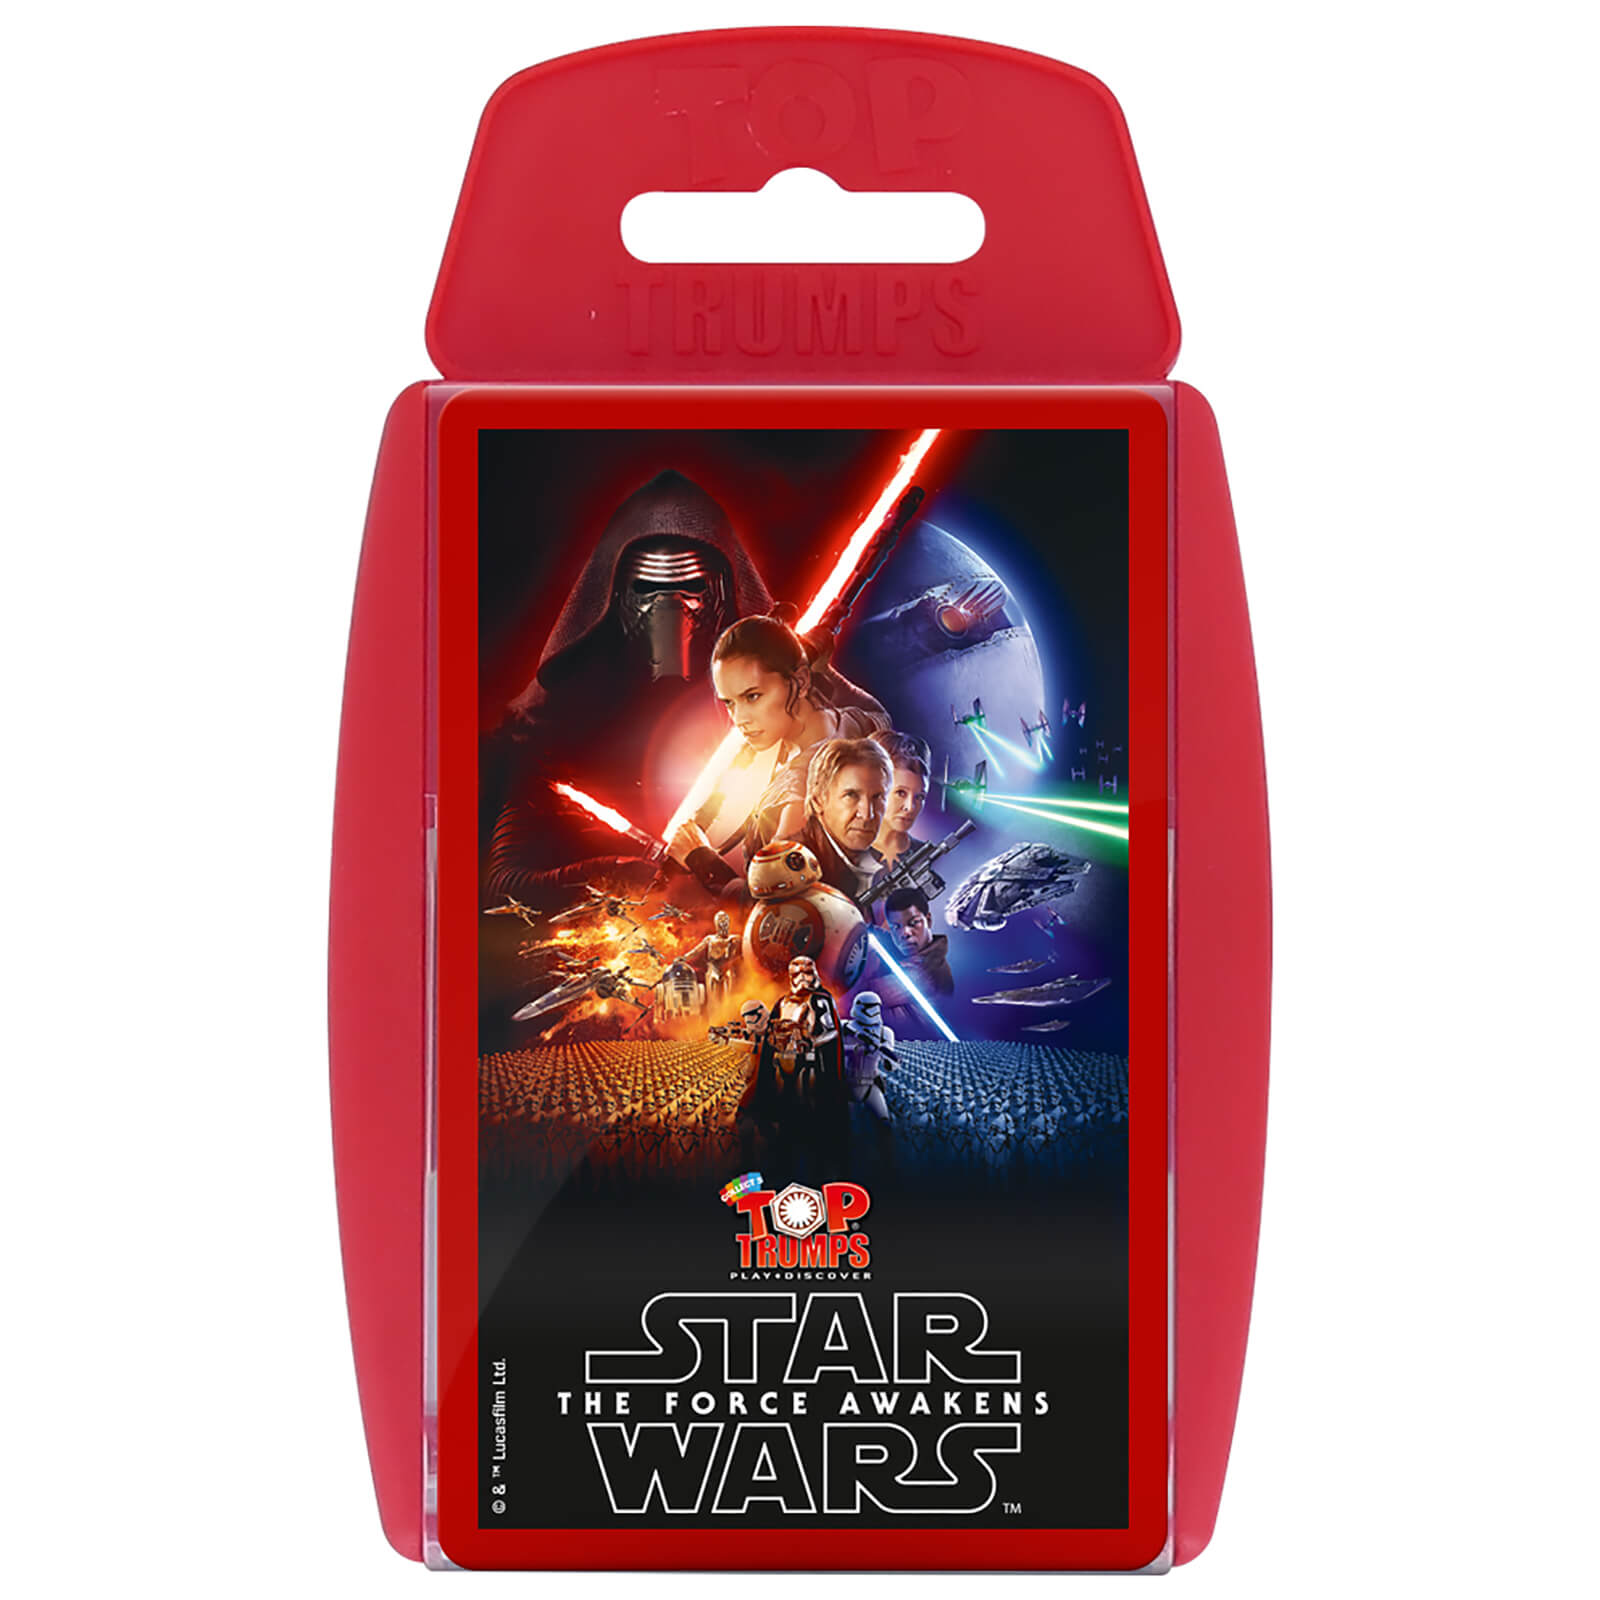 Image of Top Trumps Card Game - Star Wars: The Force Awakens Edition